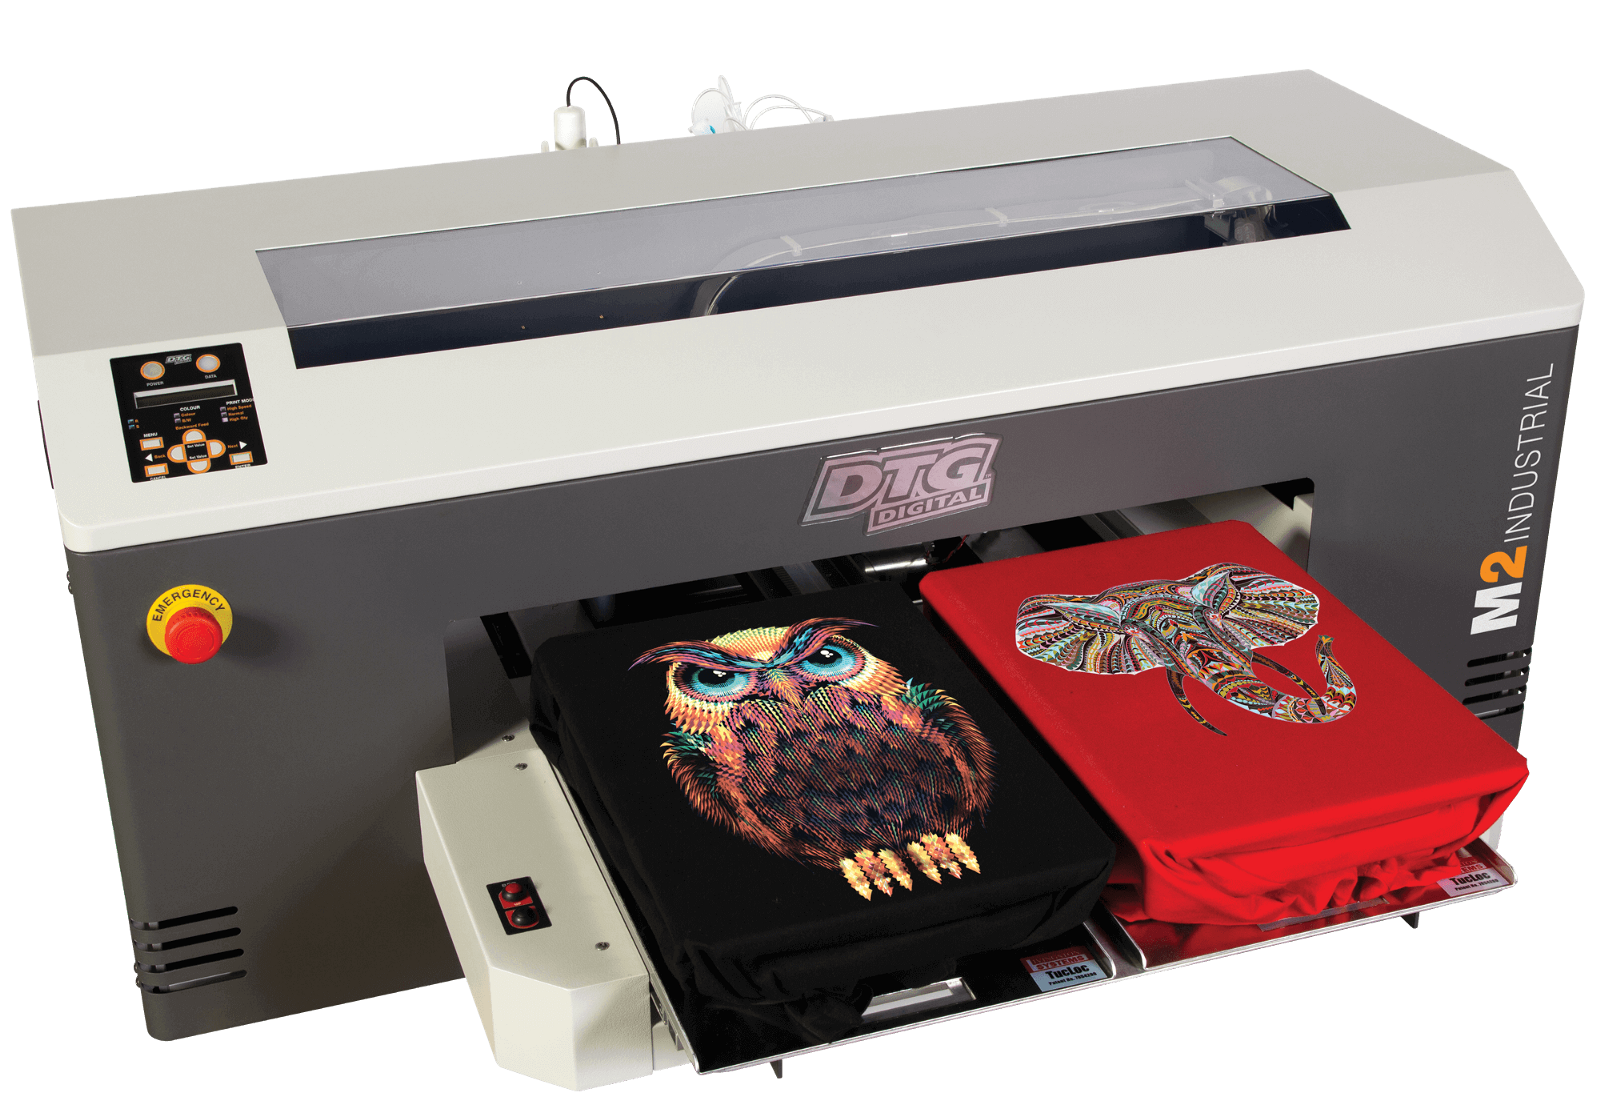 Design T Shirt Printing Machine: Design T-shirt with the help of DTG printing machinesrh:medium.com,Design